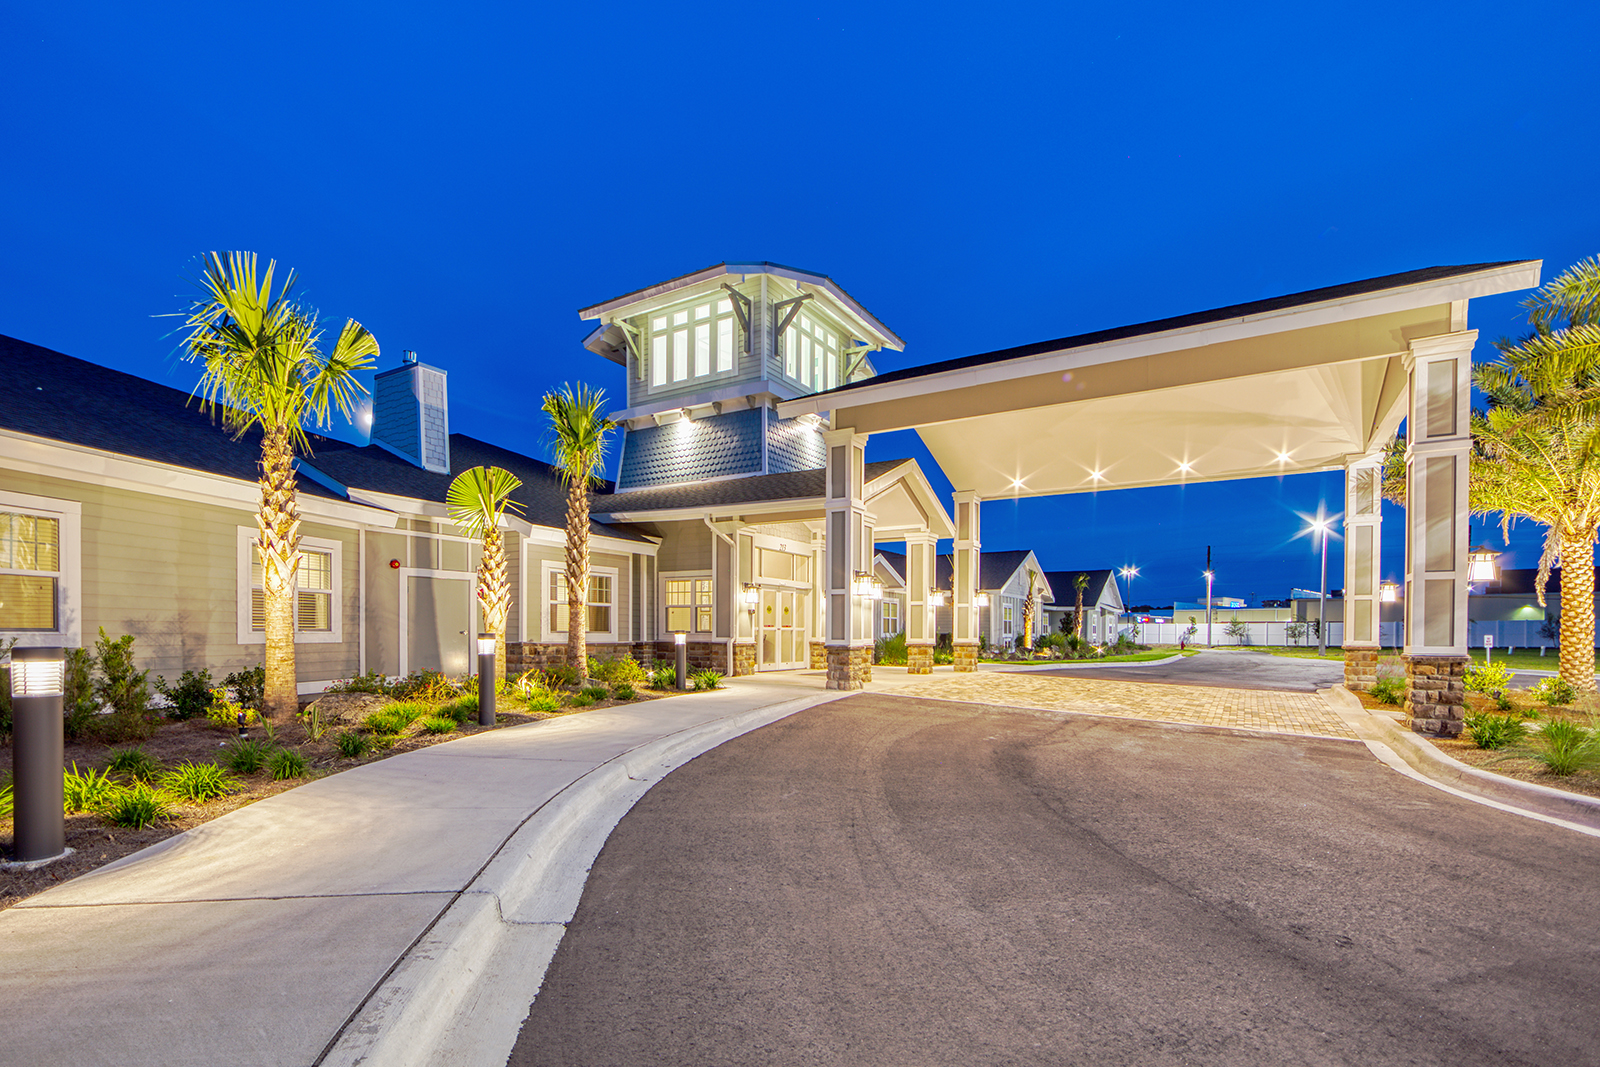 Senior living facility with palm trees entrance at evening